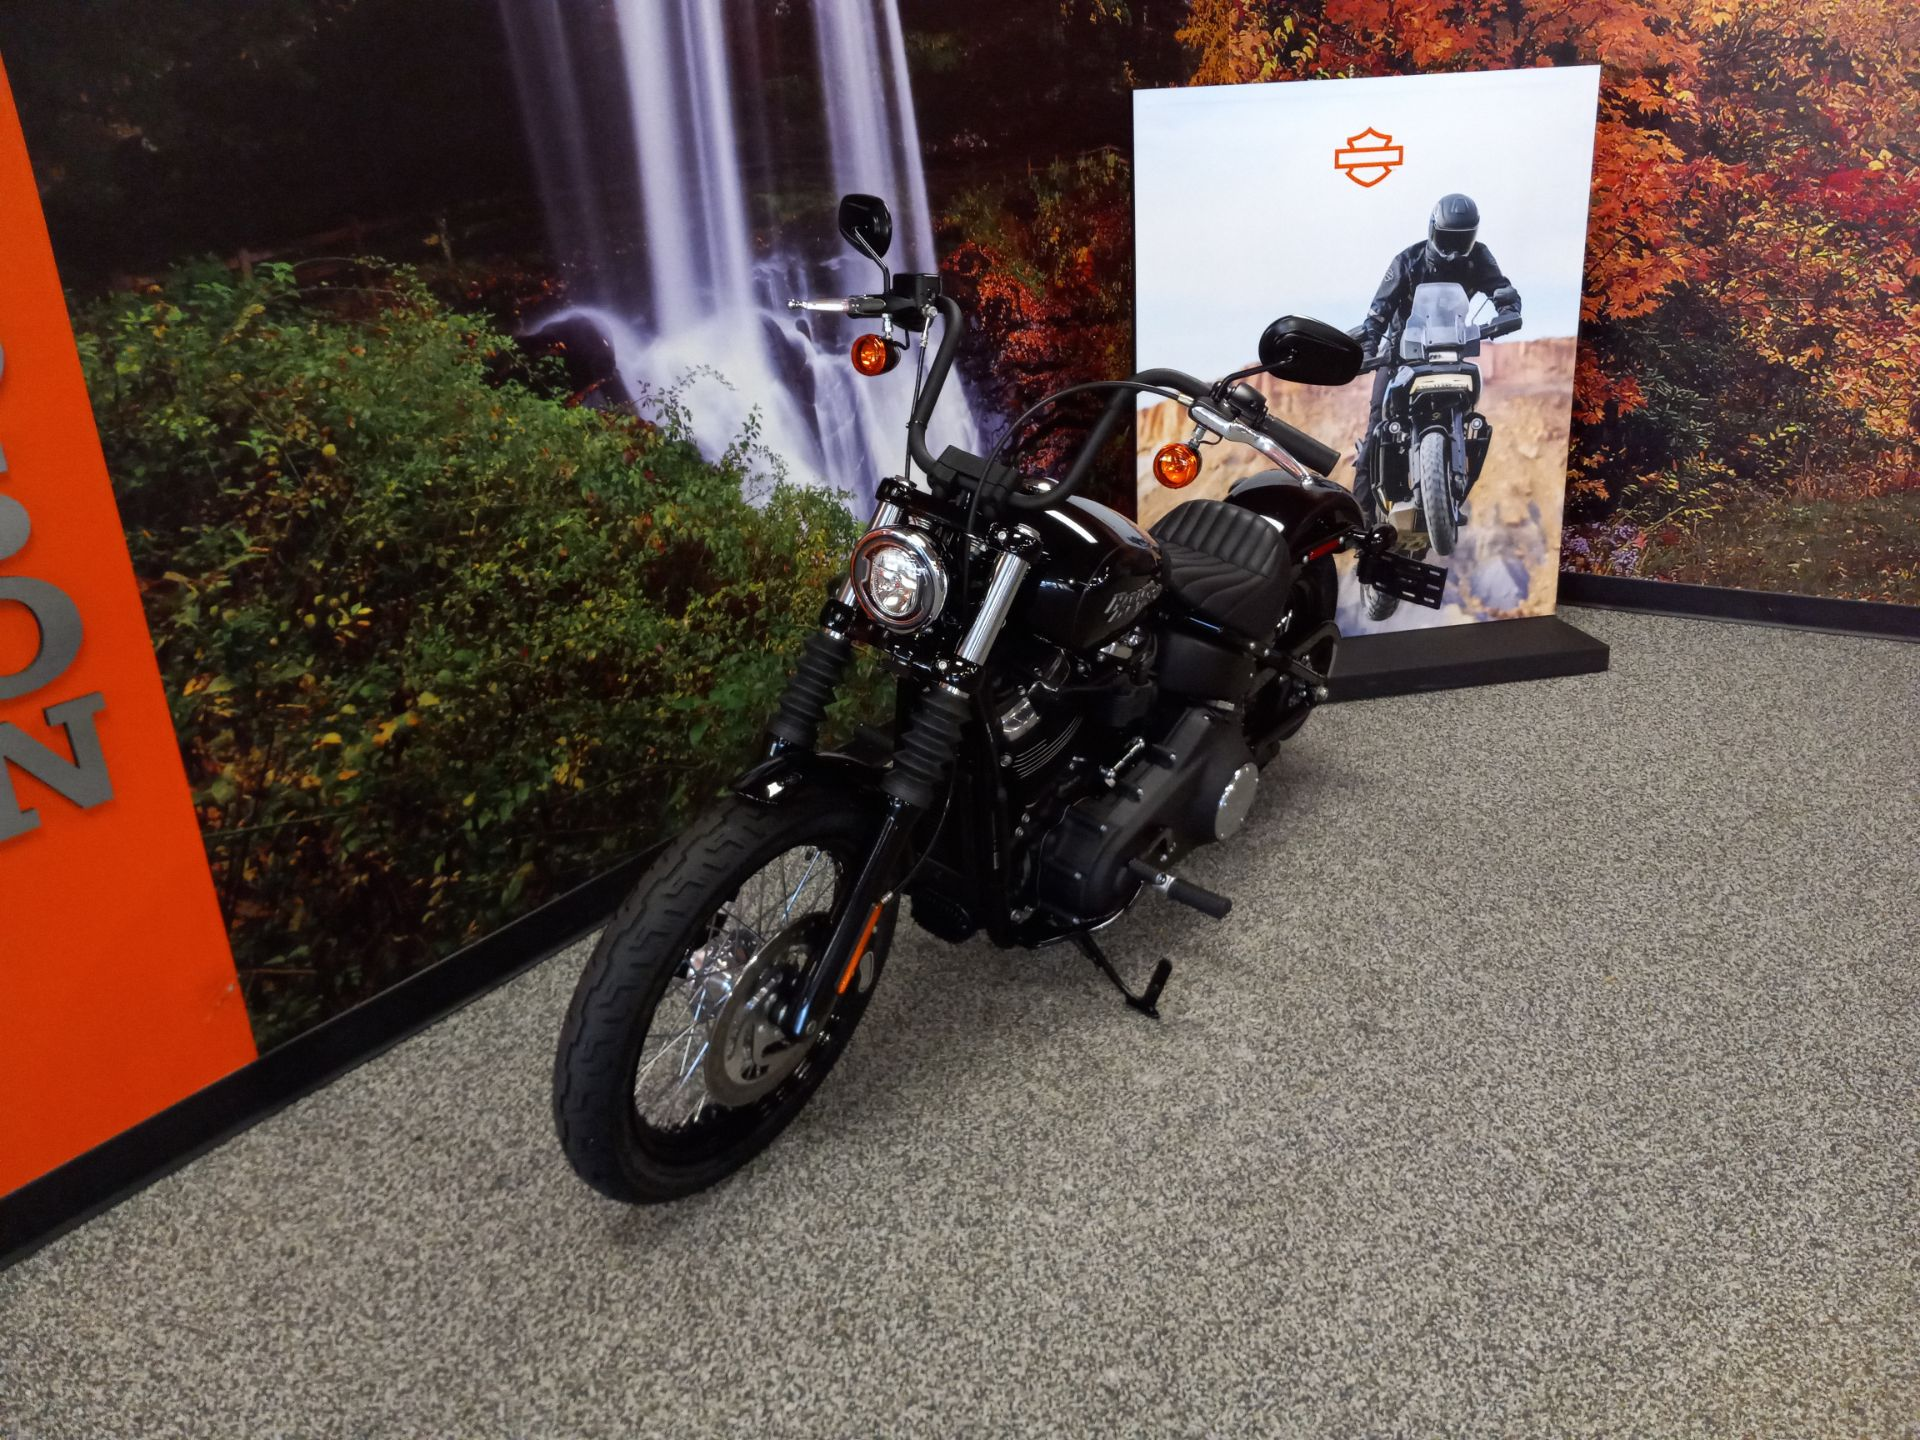 2020 Harley-Davidson Street Bob in Knoxville, Tennessee - Photo 2